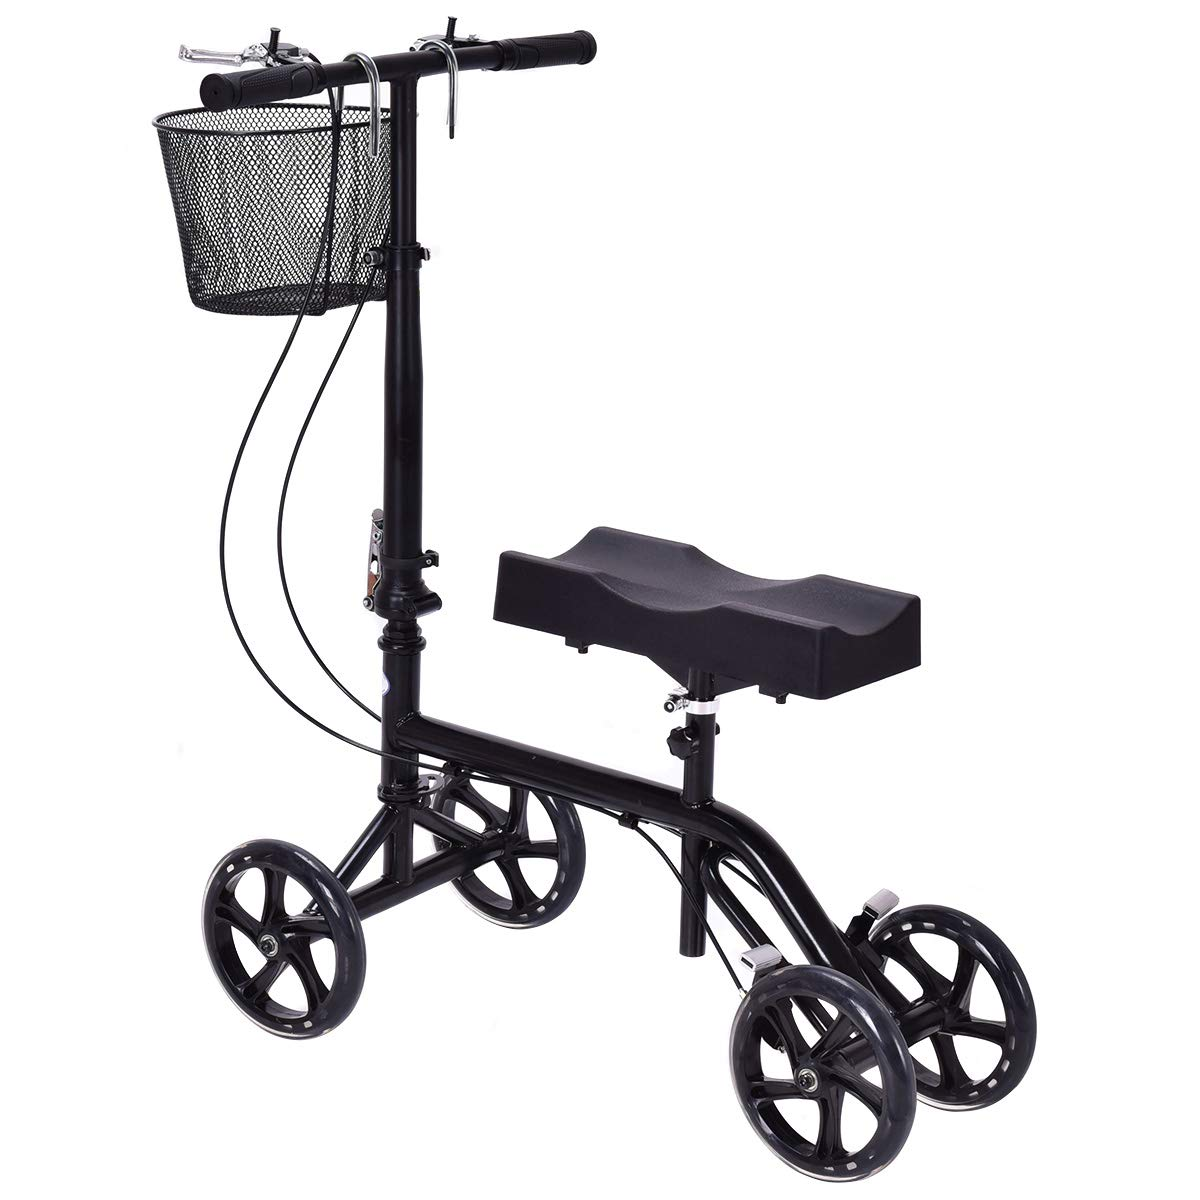 Gymax Knee Walker, Foldable Steerable Knee Scooter with Orthopedic Seat Pad, Adjustable Height Deluxe Brake System and Basket, for Broken Leg, Foot Injuries by GYMAX